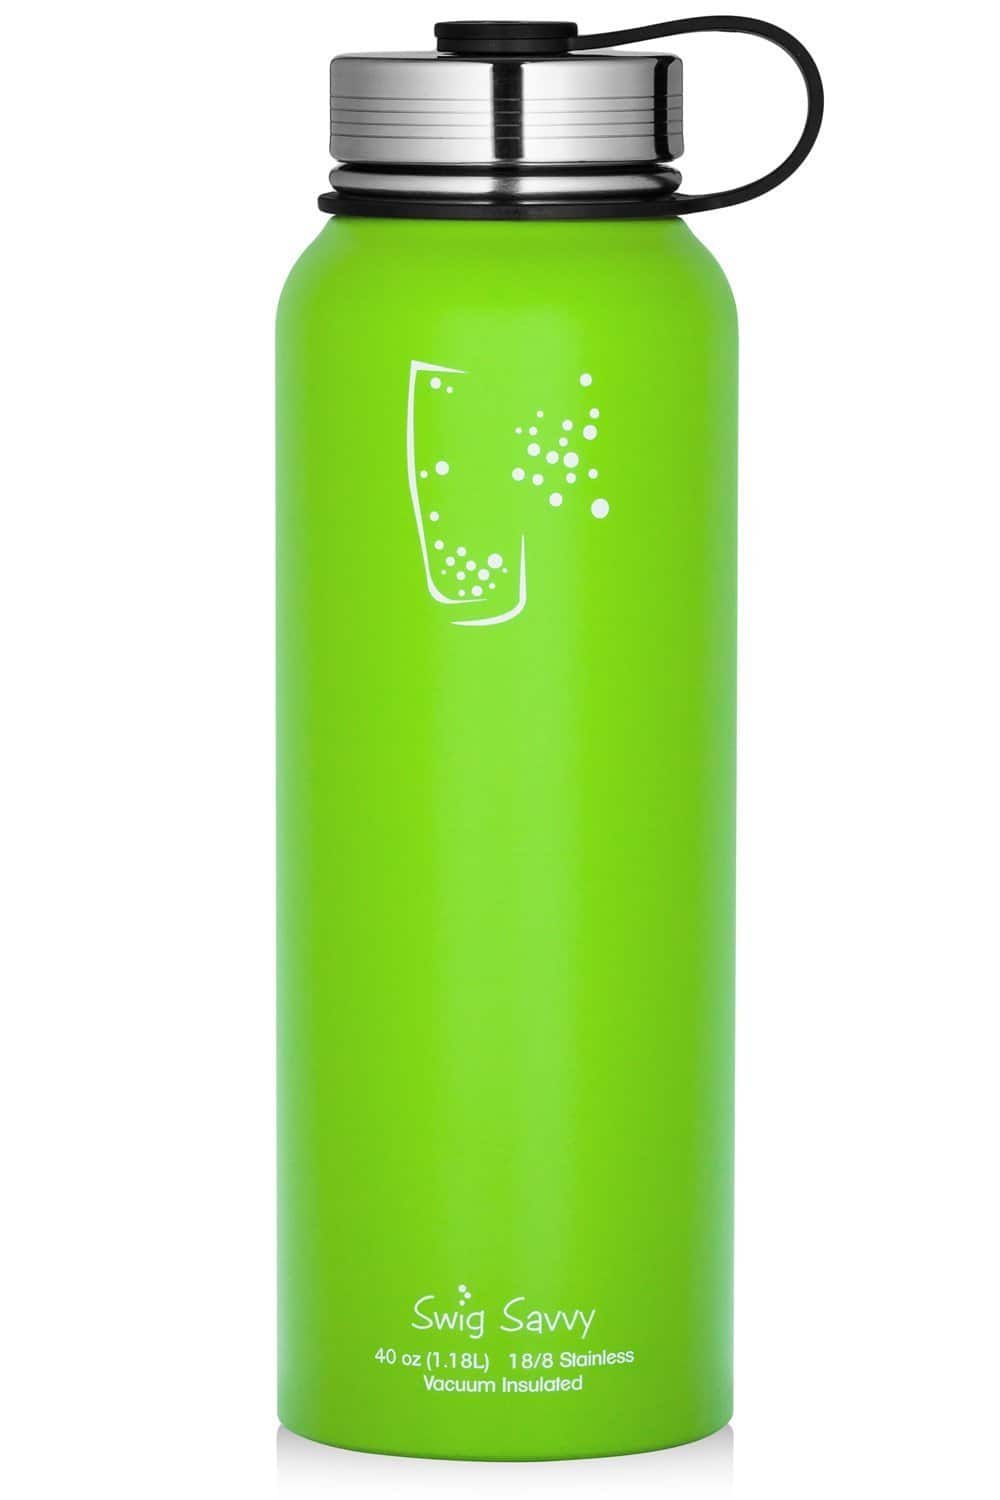 Swig Savvy Stainless Steel Water Bottle - Vacuum Insulated 30oz  for $7.03